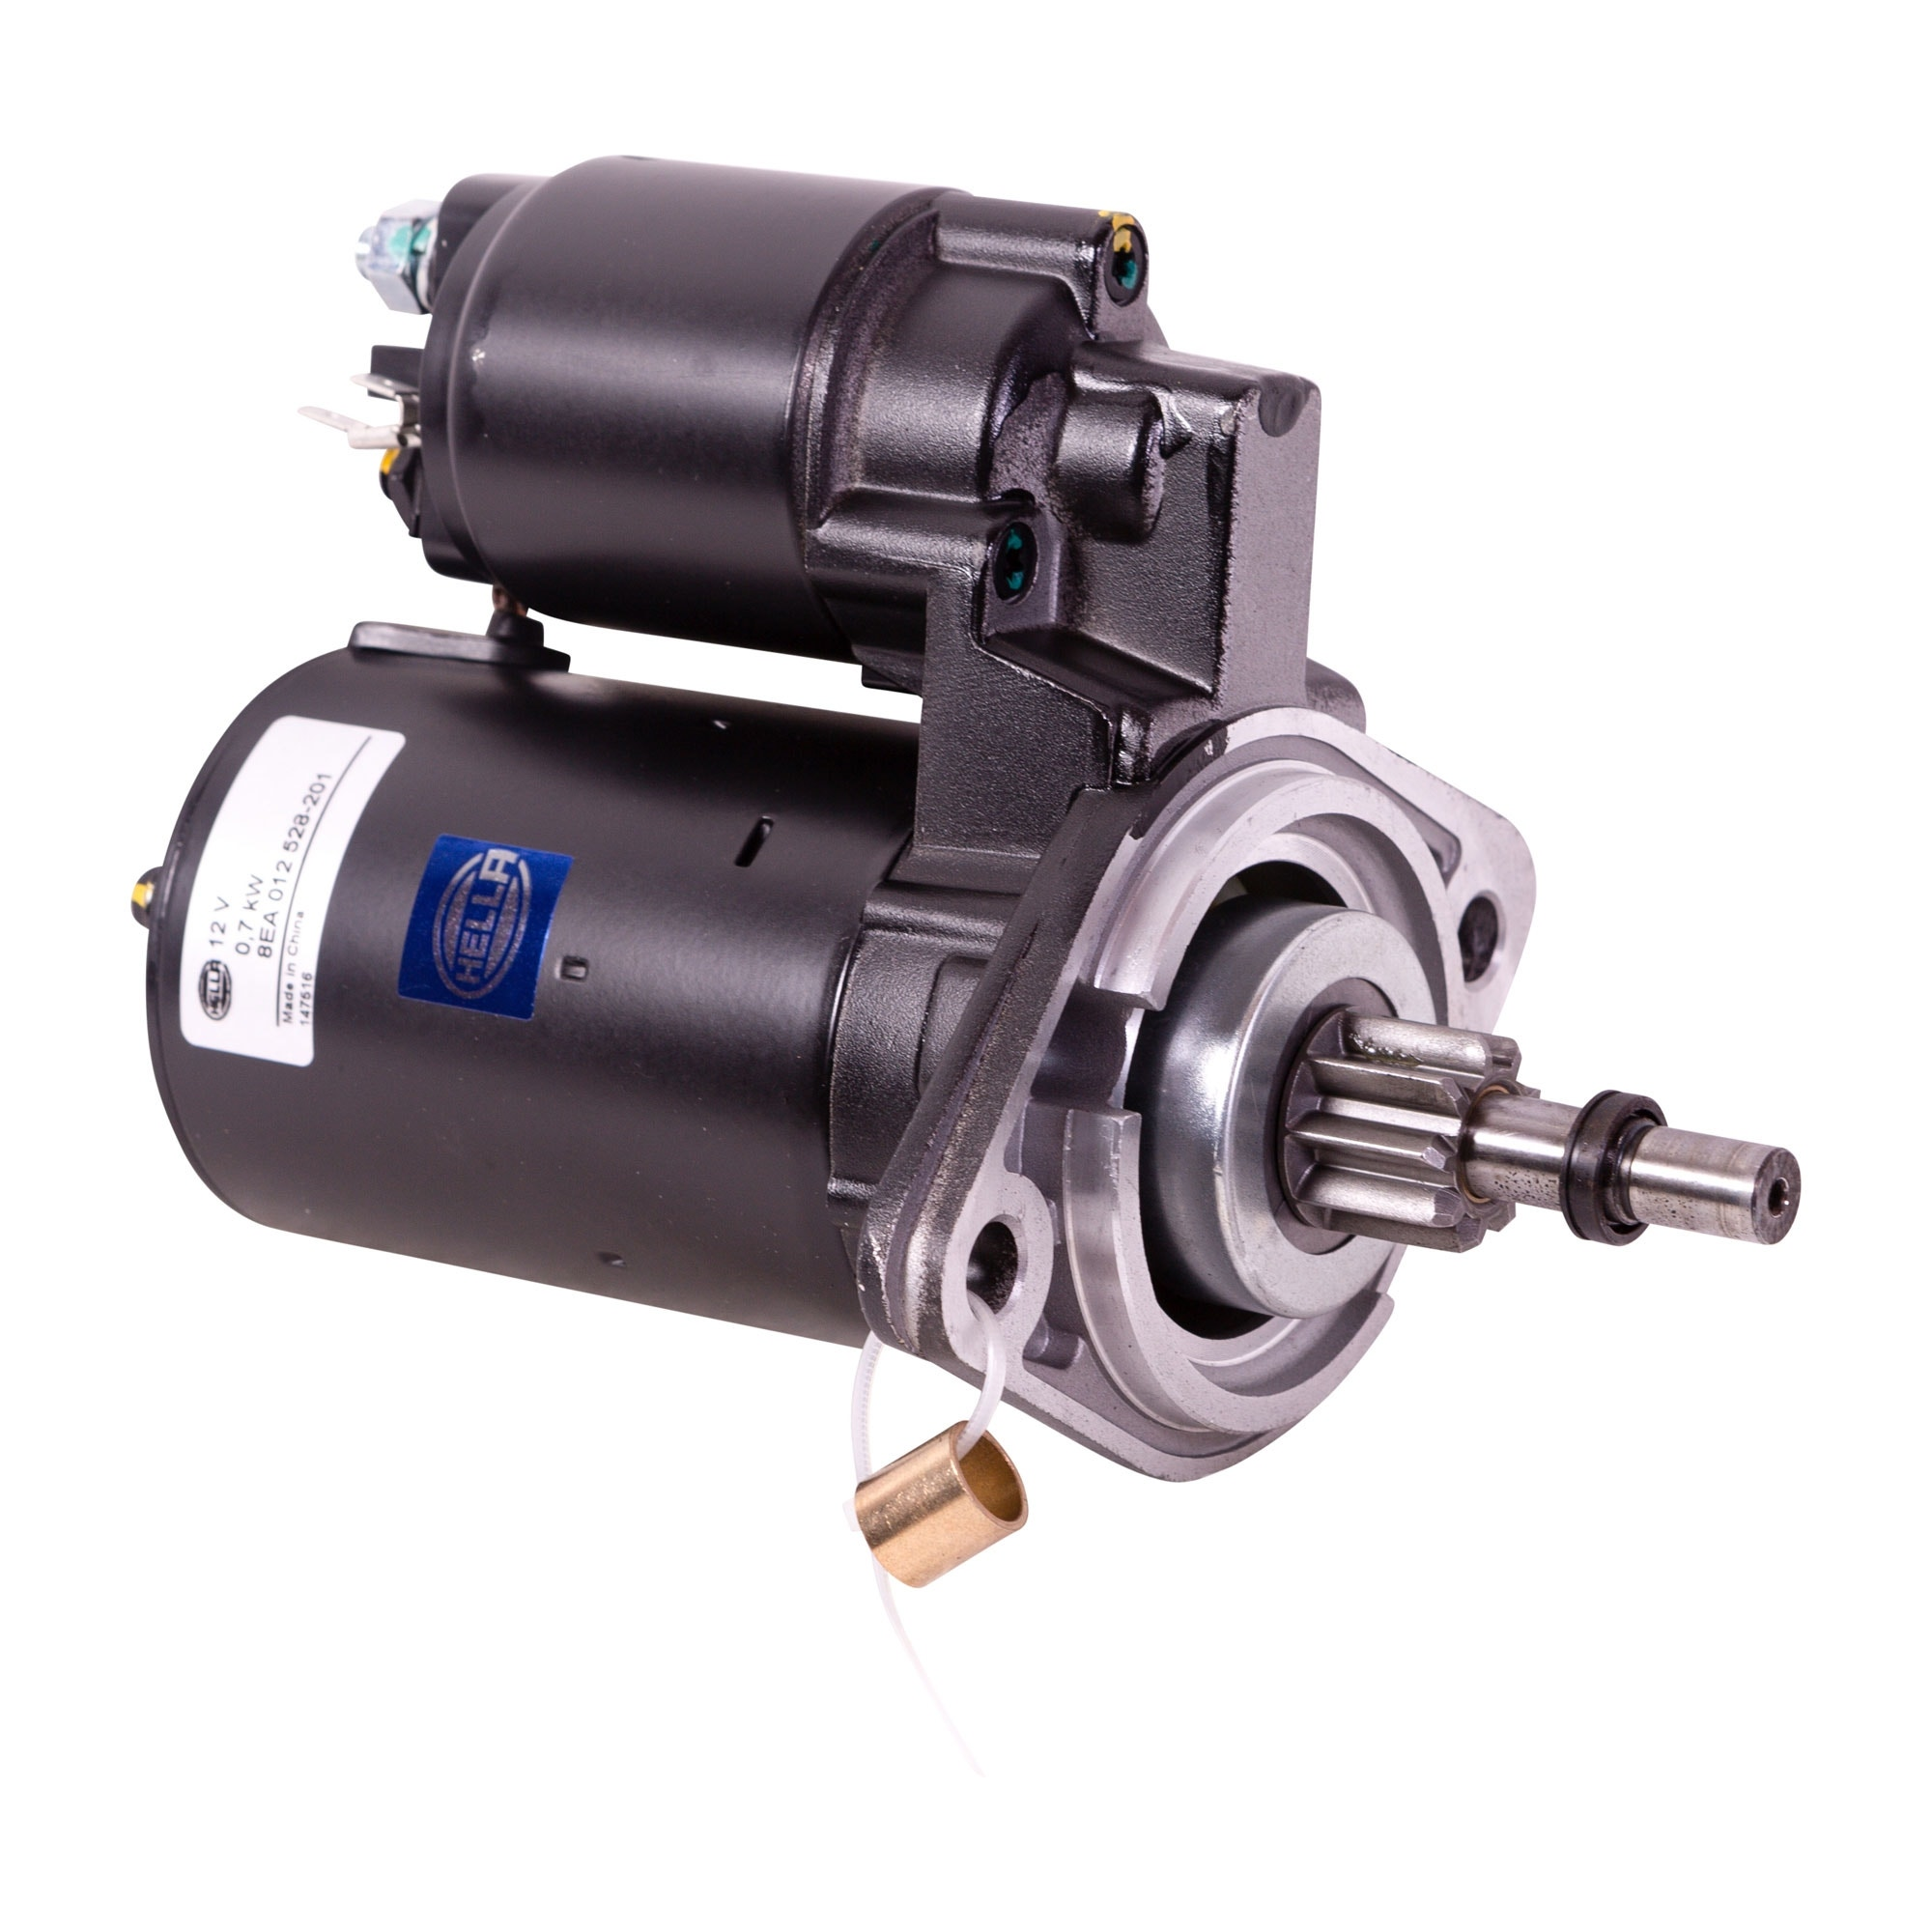 Starter motor VW Beetle 1968 on /& Type 2 1968 to 1975  Air cooled 12 volt new